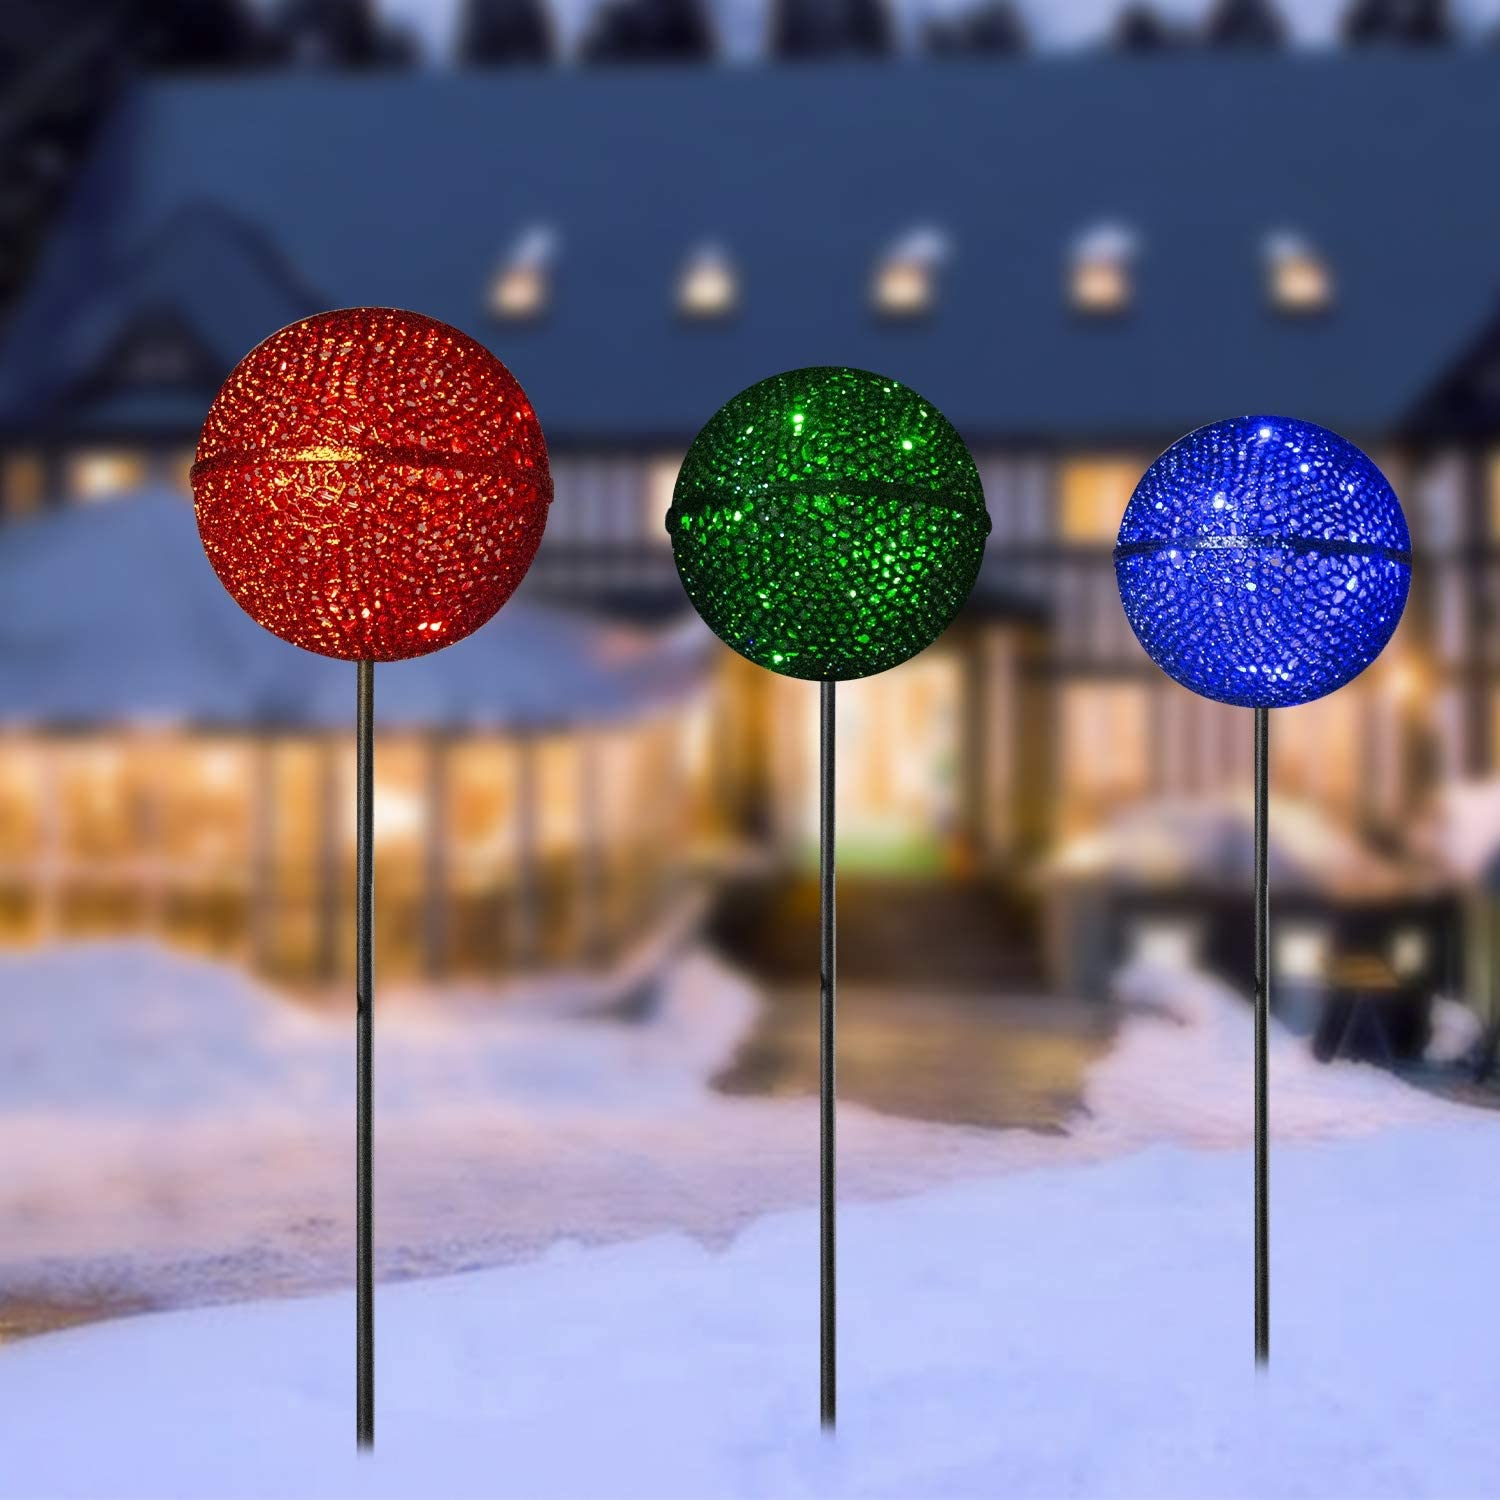 Vanthylit 3PK Christmas Garden Stakes Multi-Coloured Pathway Lights with Crackle Ball Outdoor Decorations for Garden Christmas Pre-lit Blue Green Pathway Markers Lights Outdoor Stake Light Decor